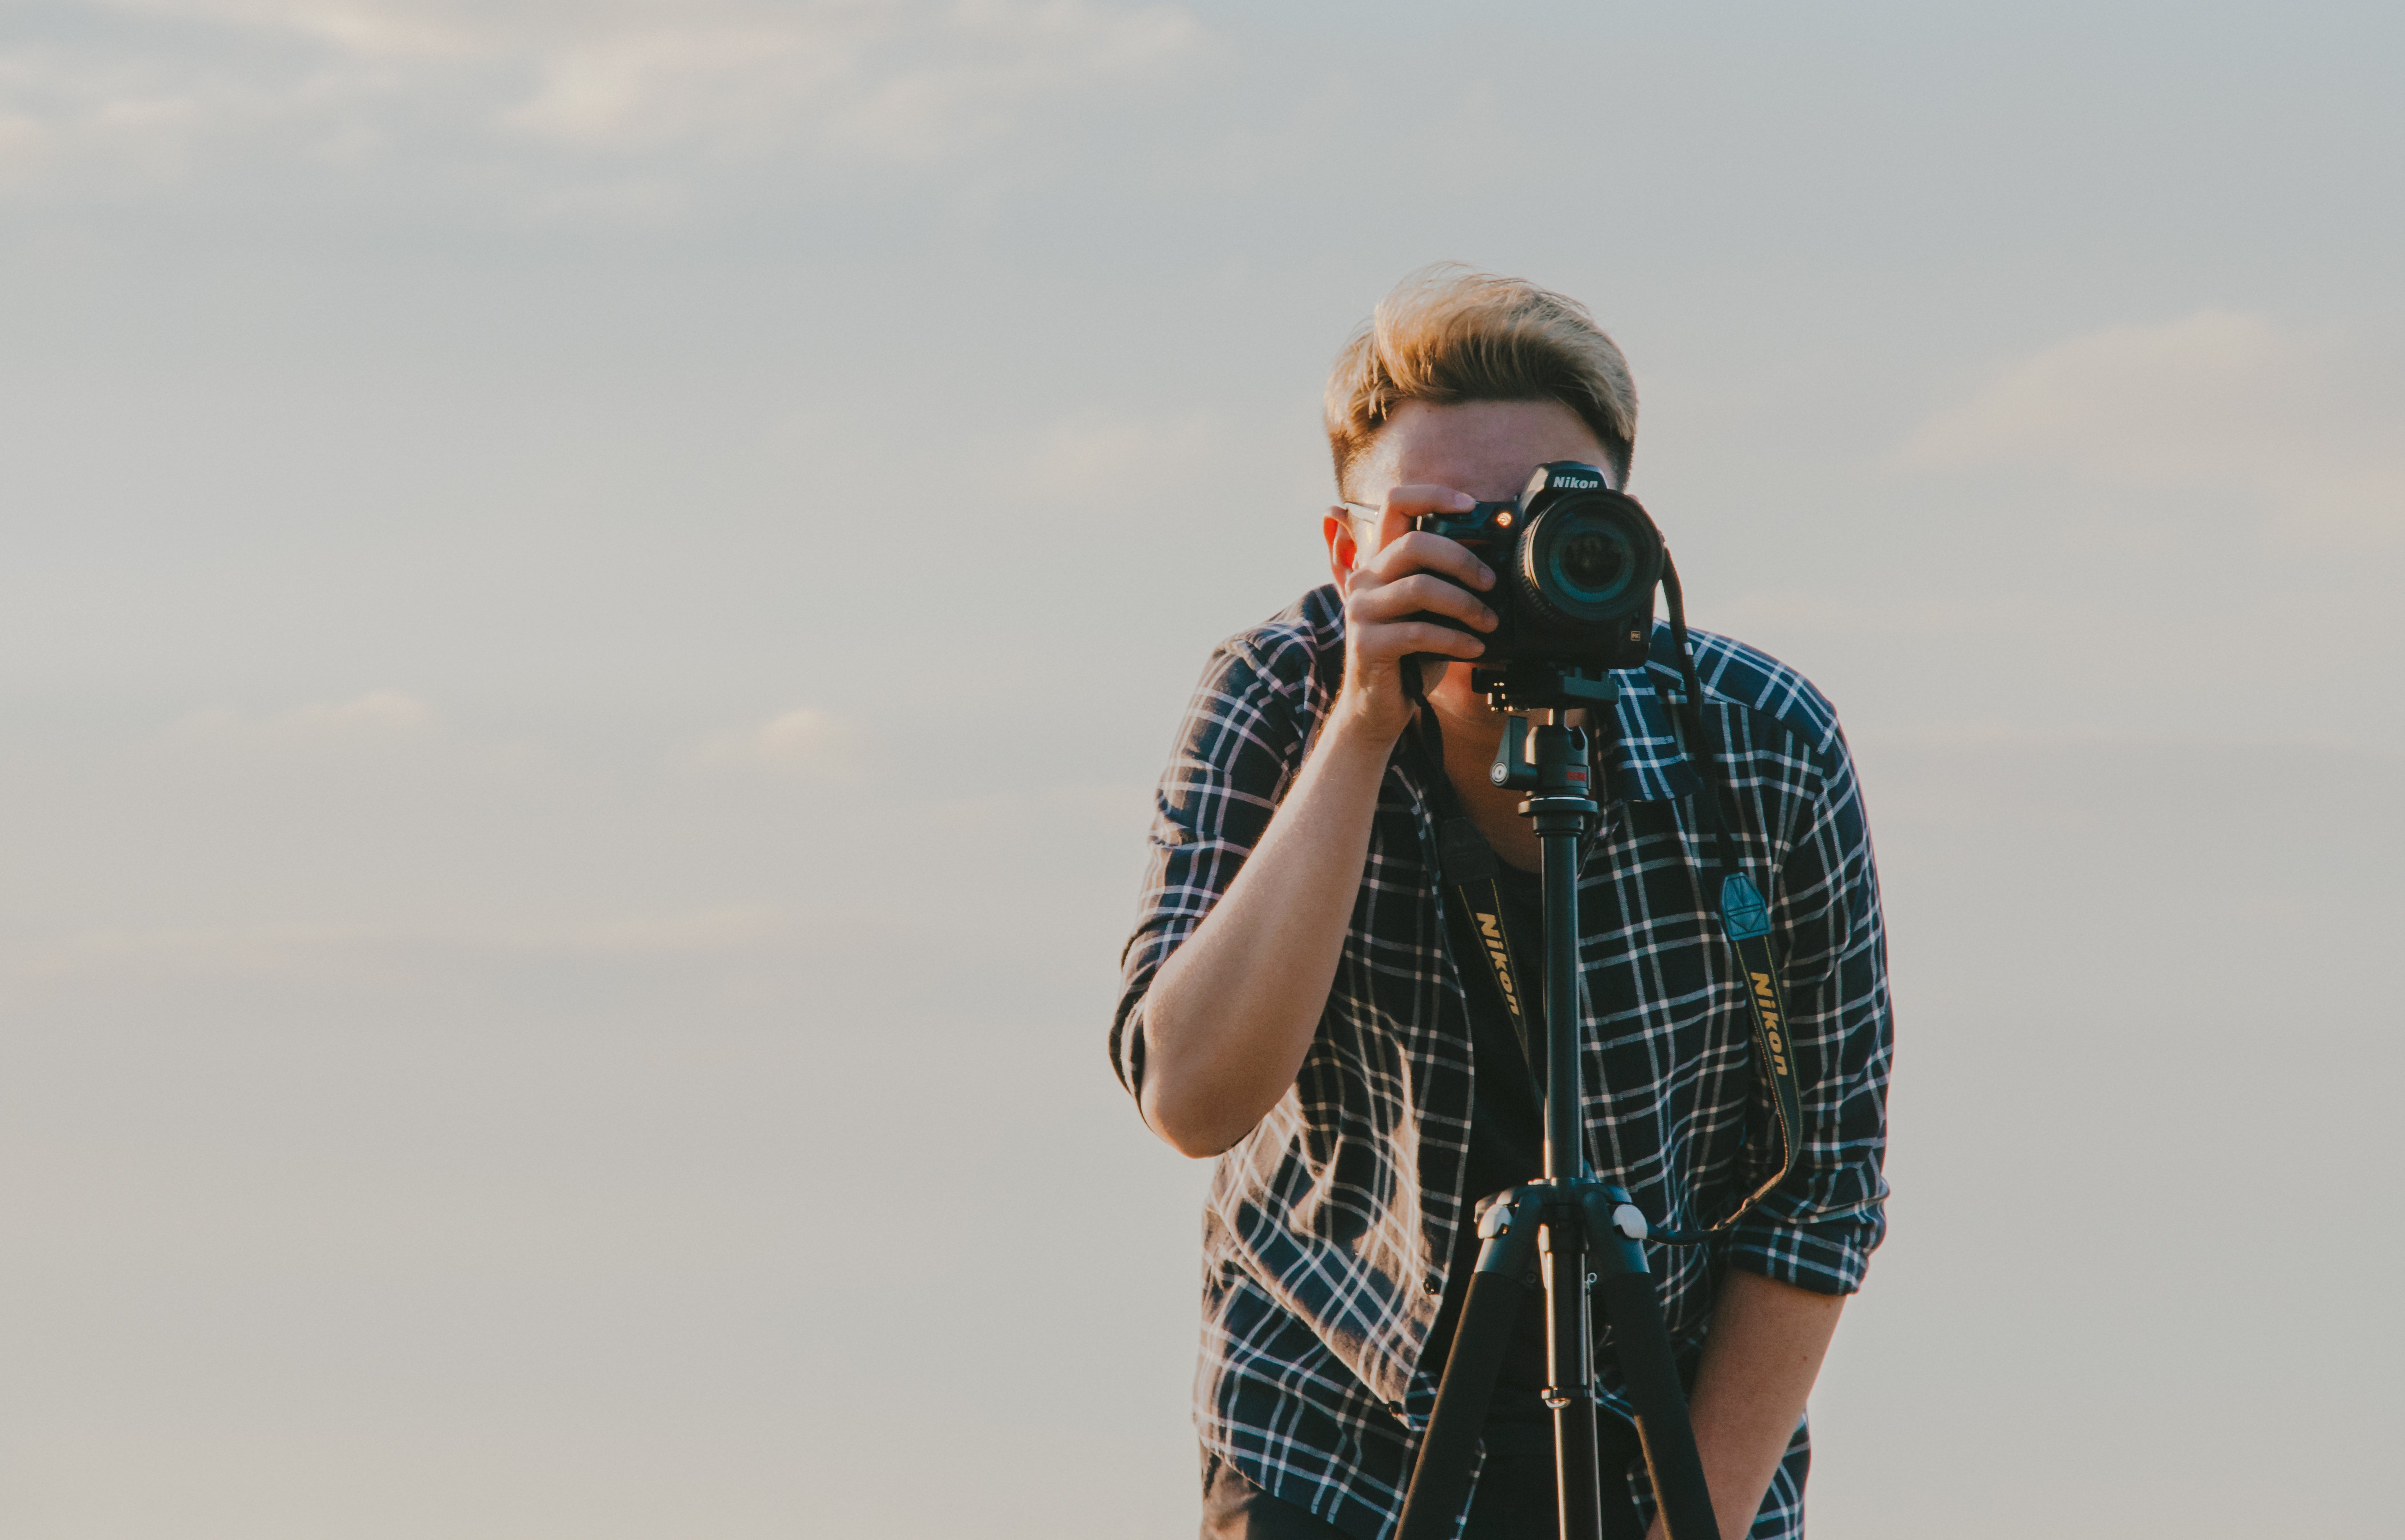 Canva - Man Holding Dslr Camera With Tripod